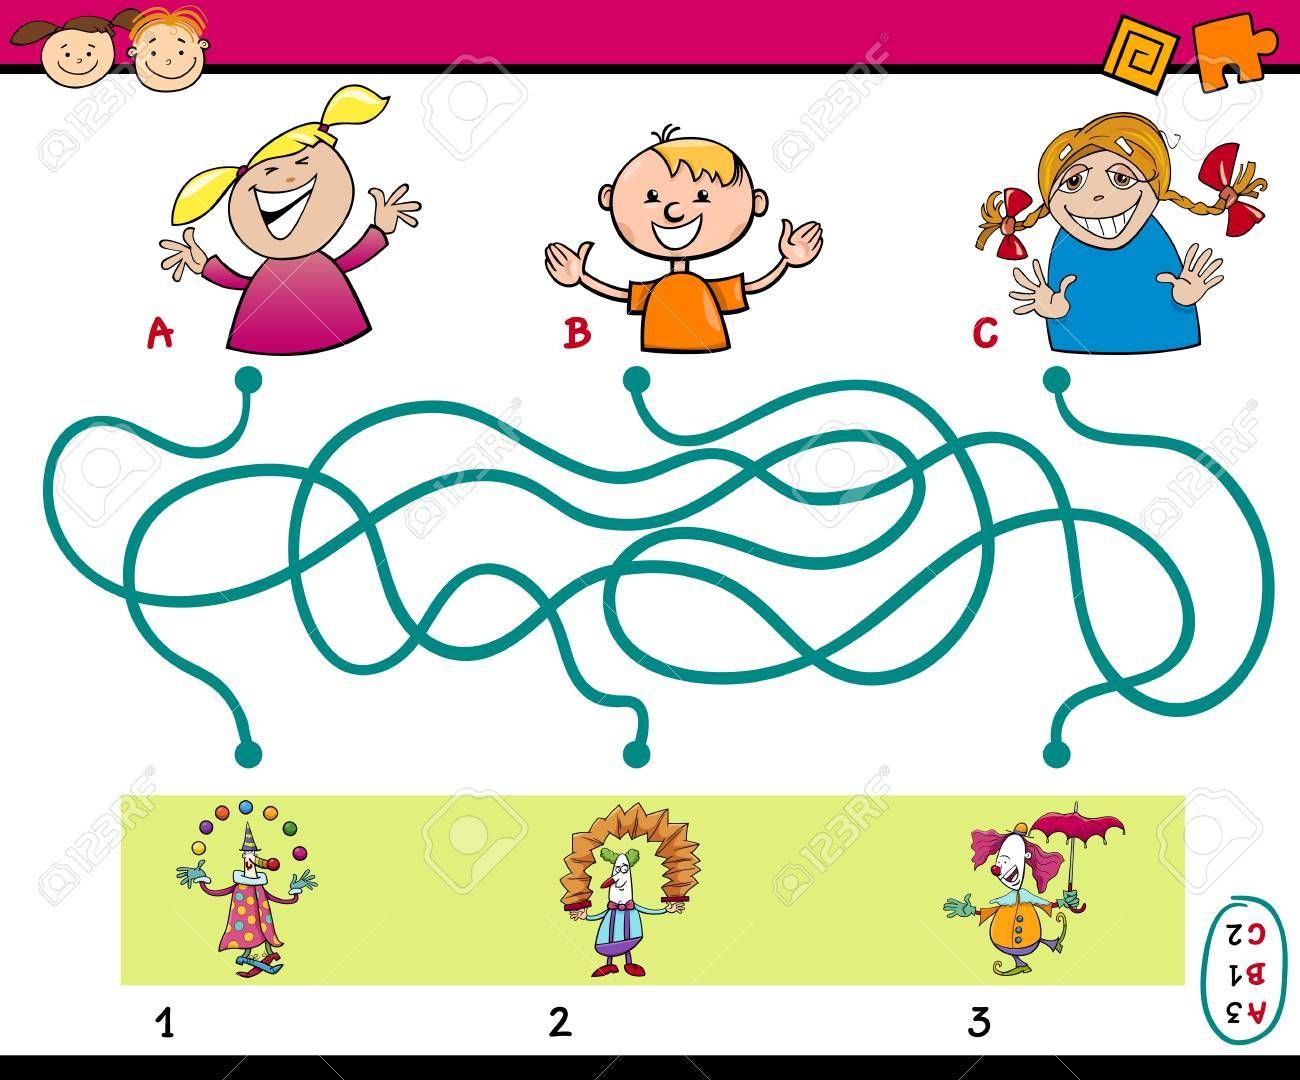 Cartoon Illustration Of Education Paths Or Maze Puzzle Task For